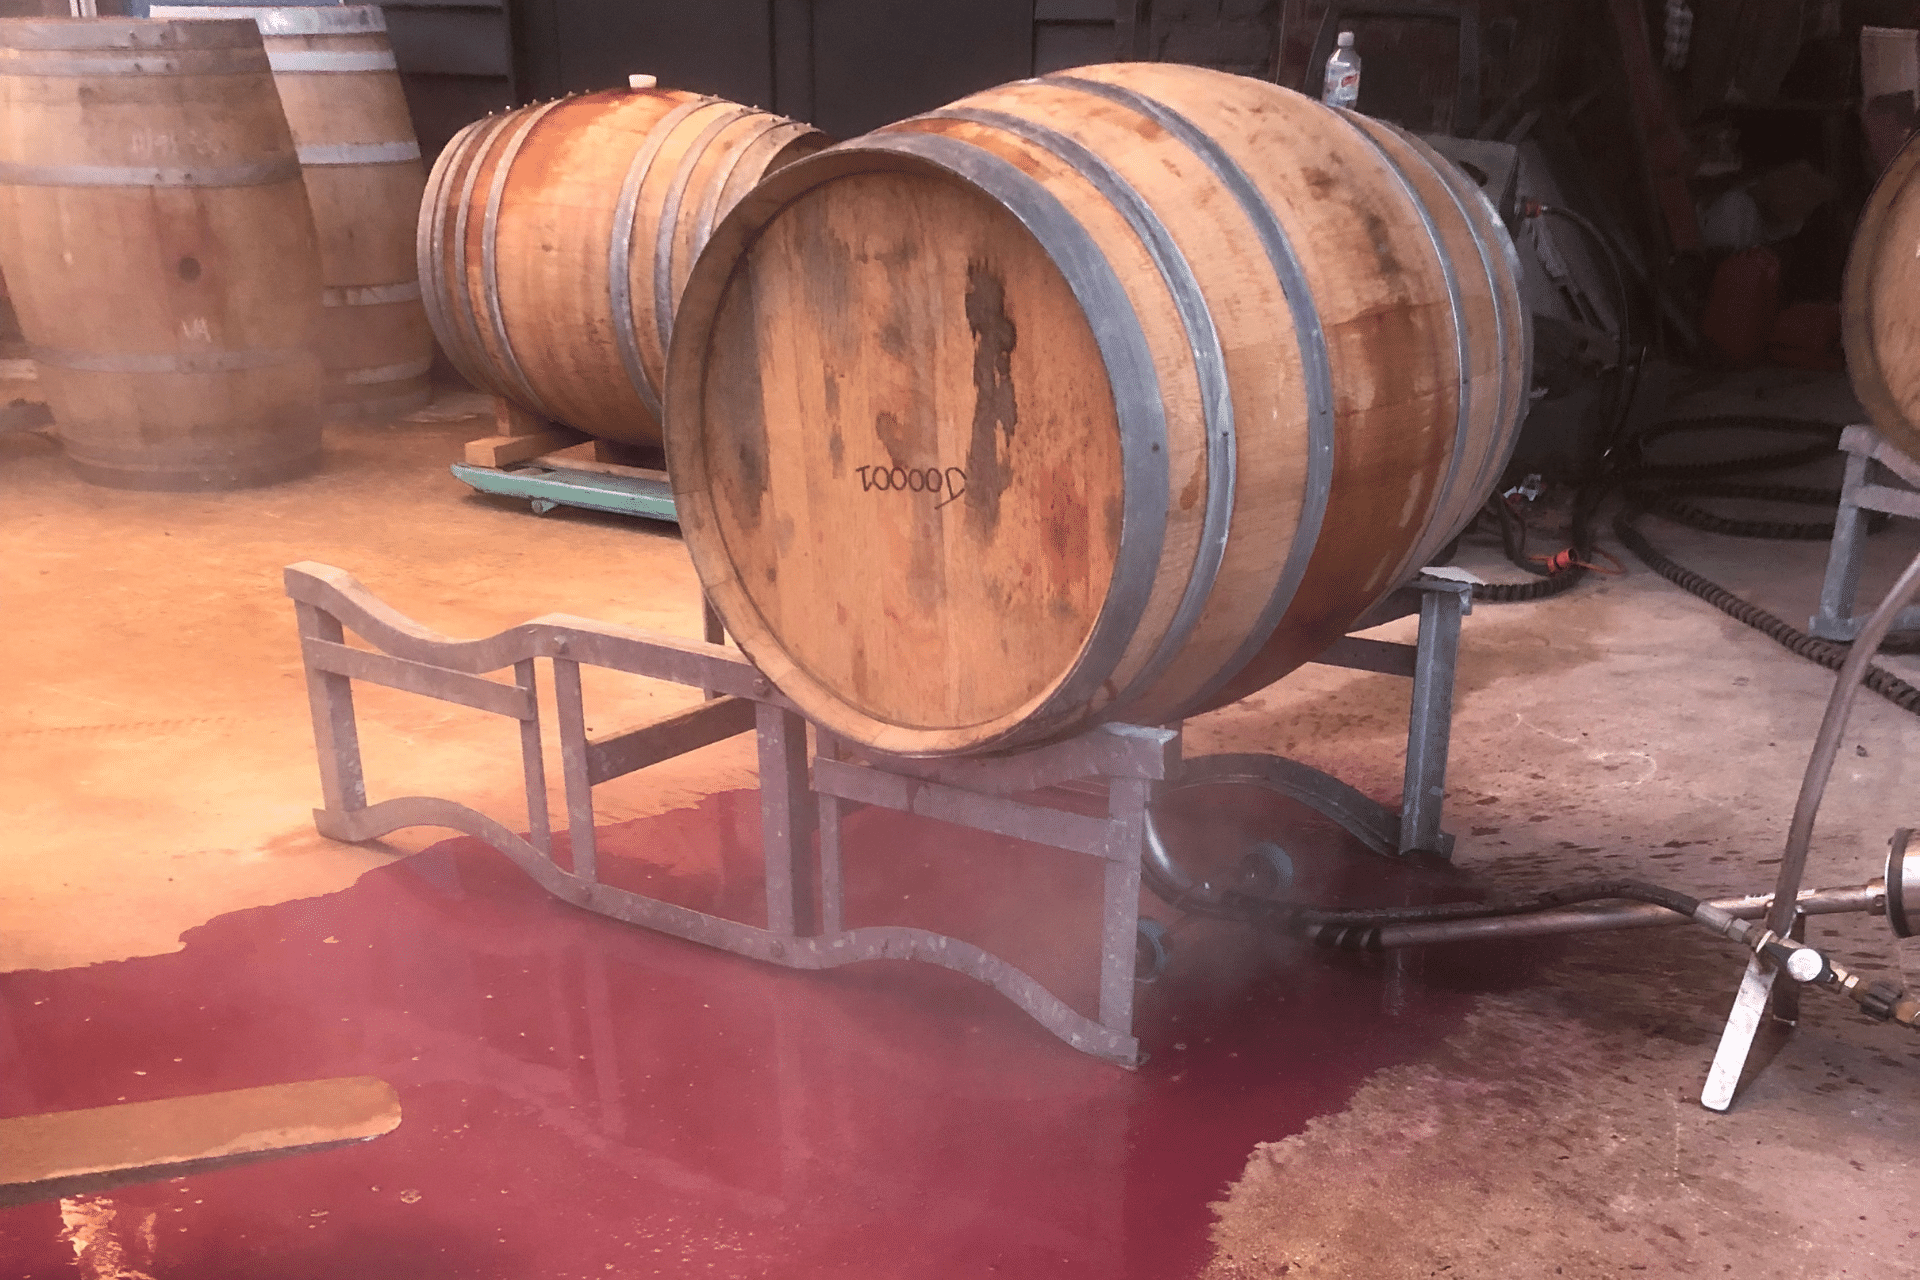 lees being flushed out of the barrel by a barrel cleaner